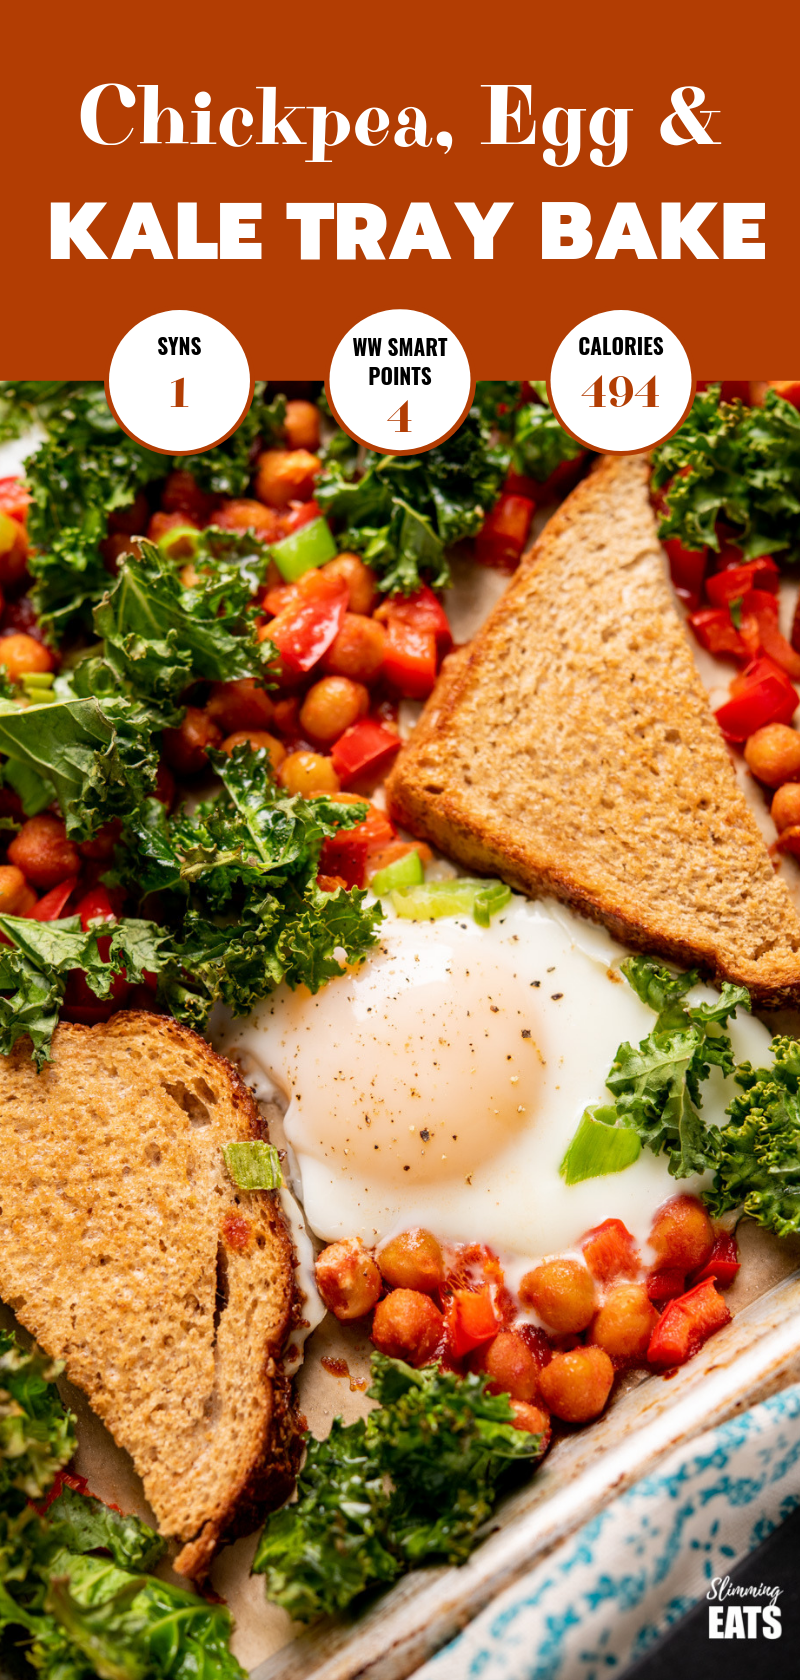 chickpea, egg and kale tray bake pin